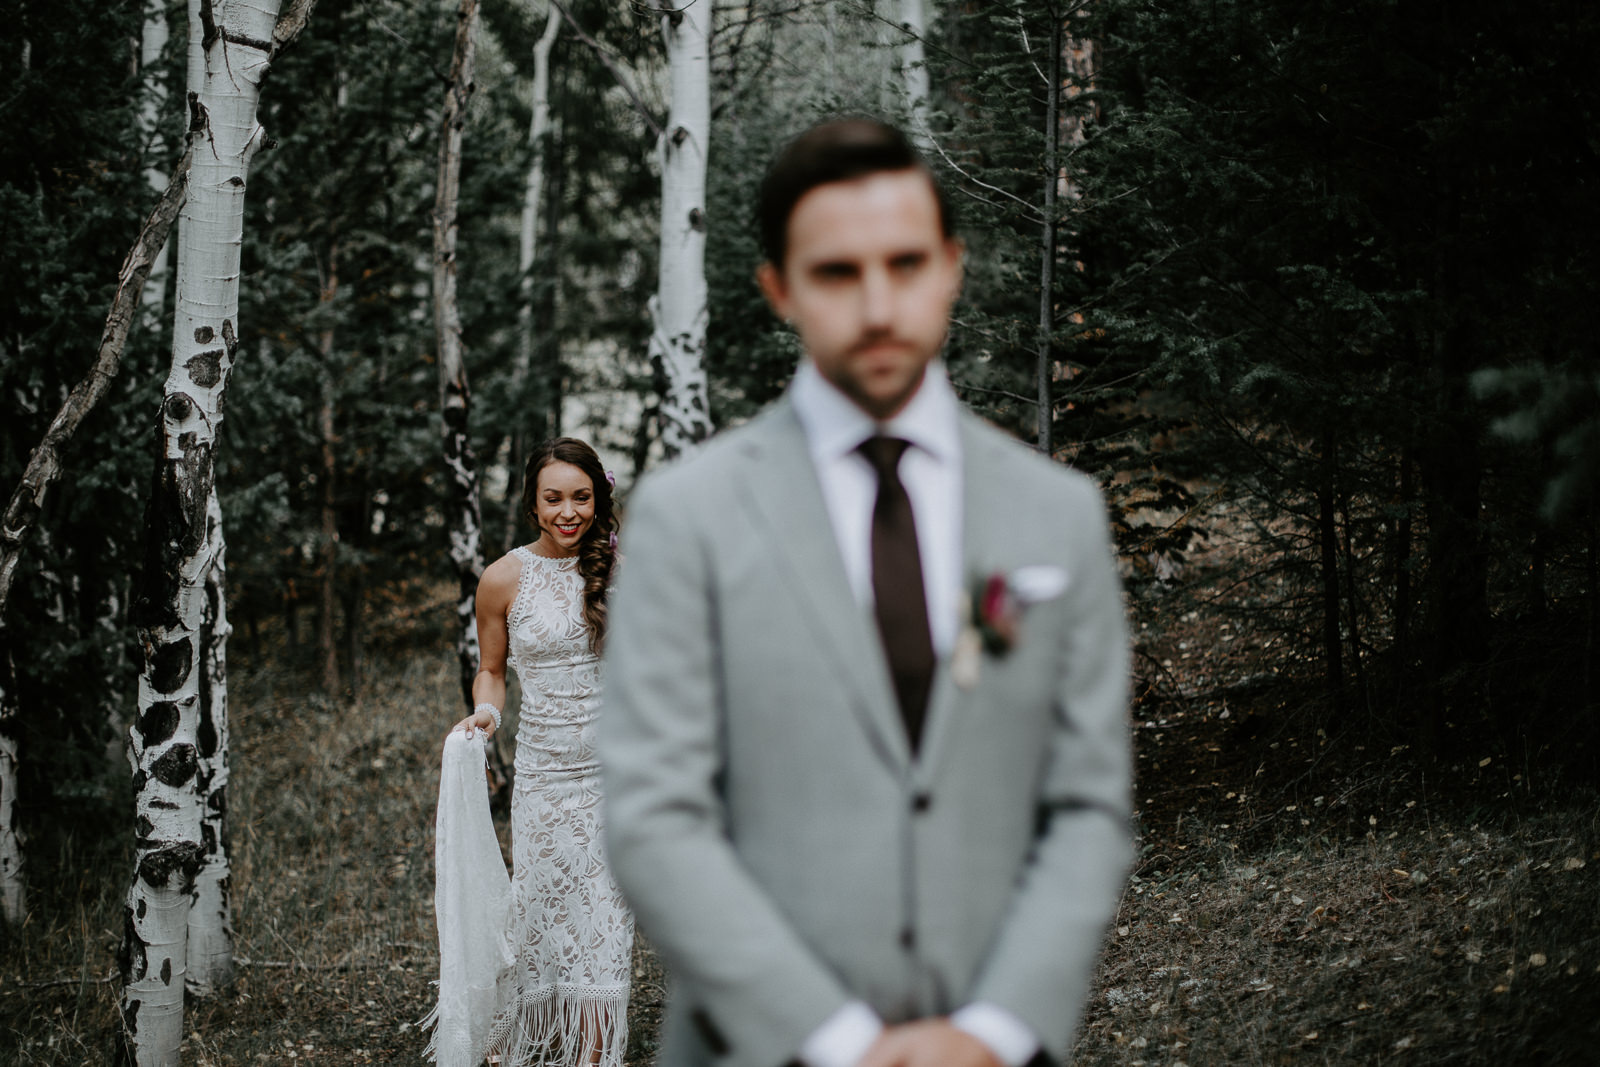 In aspen trees, a bride comes up behind her partner